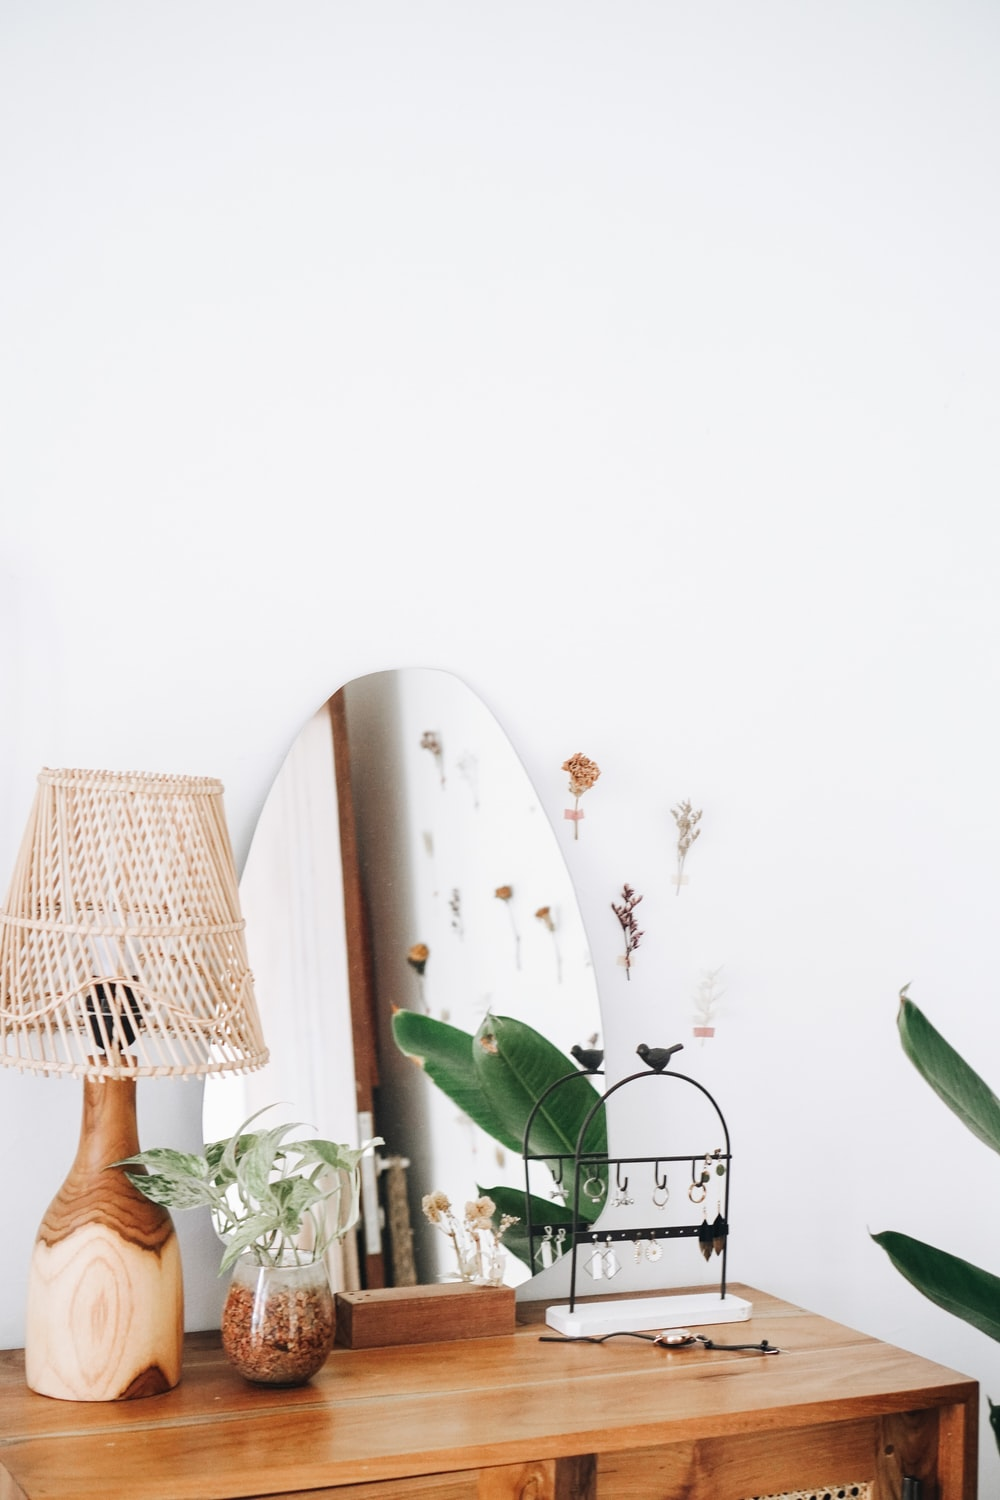 white and green flower beside brown table lamp